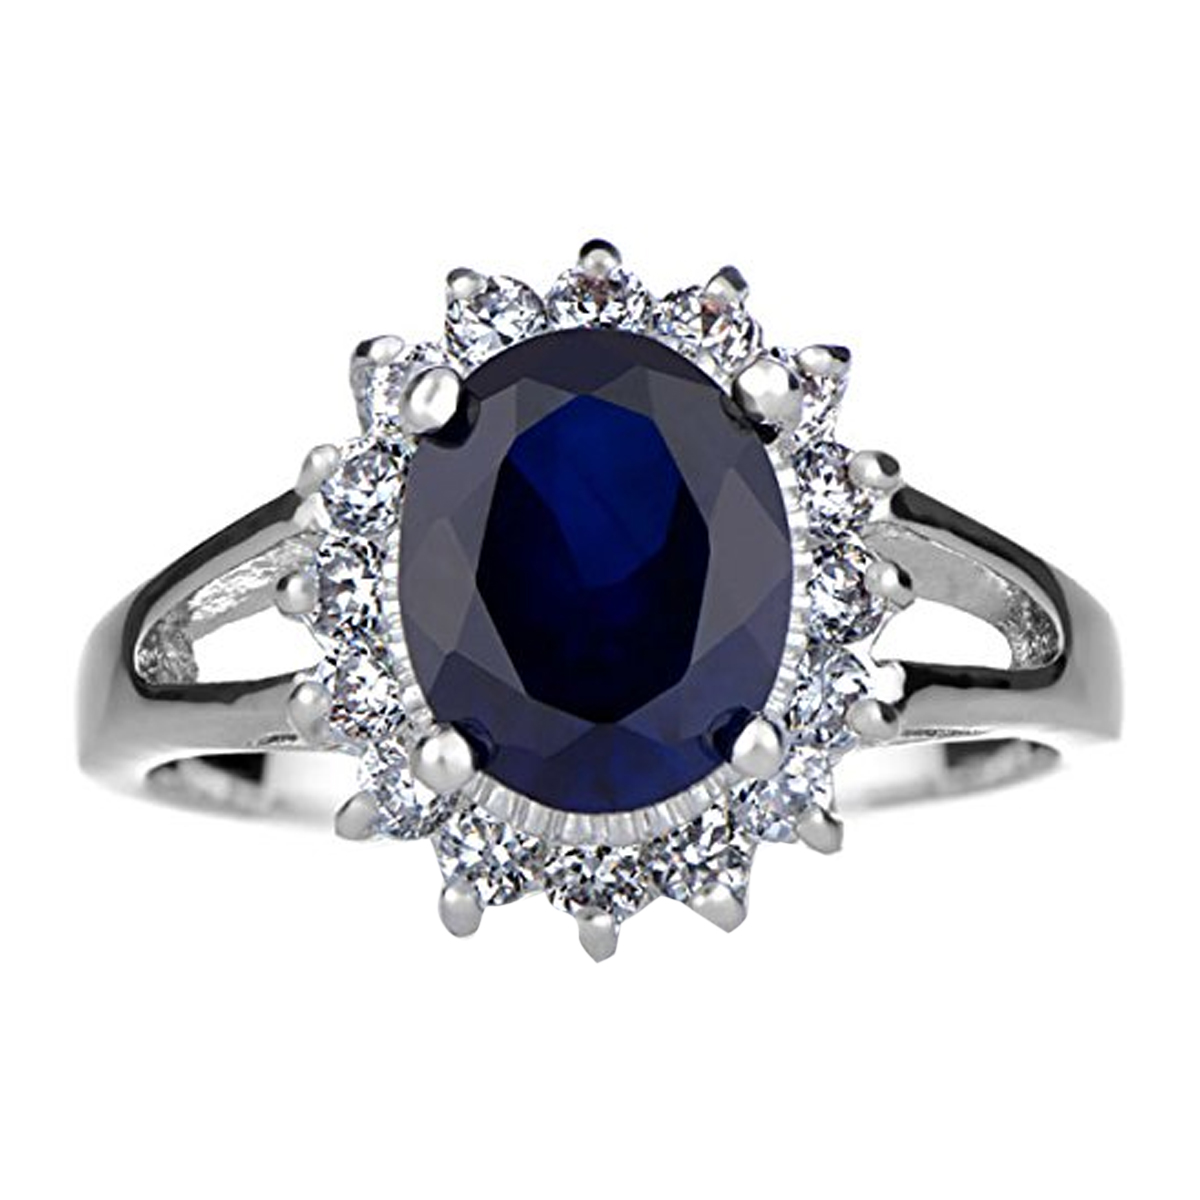 neelam sapphire wedding rings Royal Style Wedding Ring Silvertone Roll Off Image to Close Zoom Window